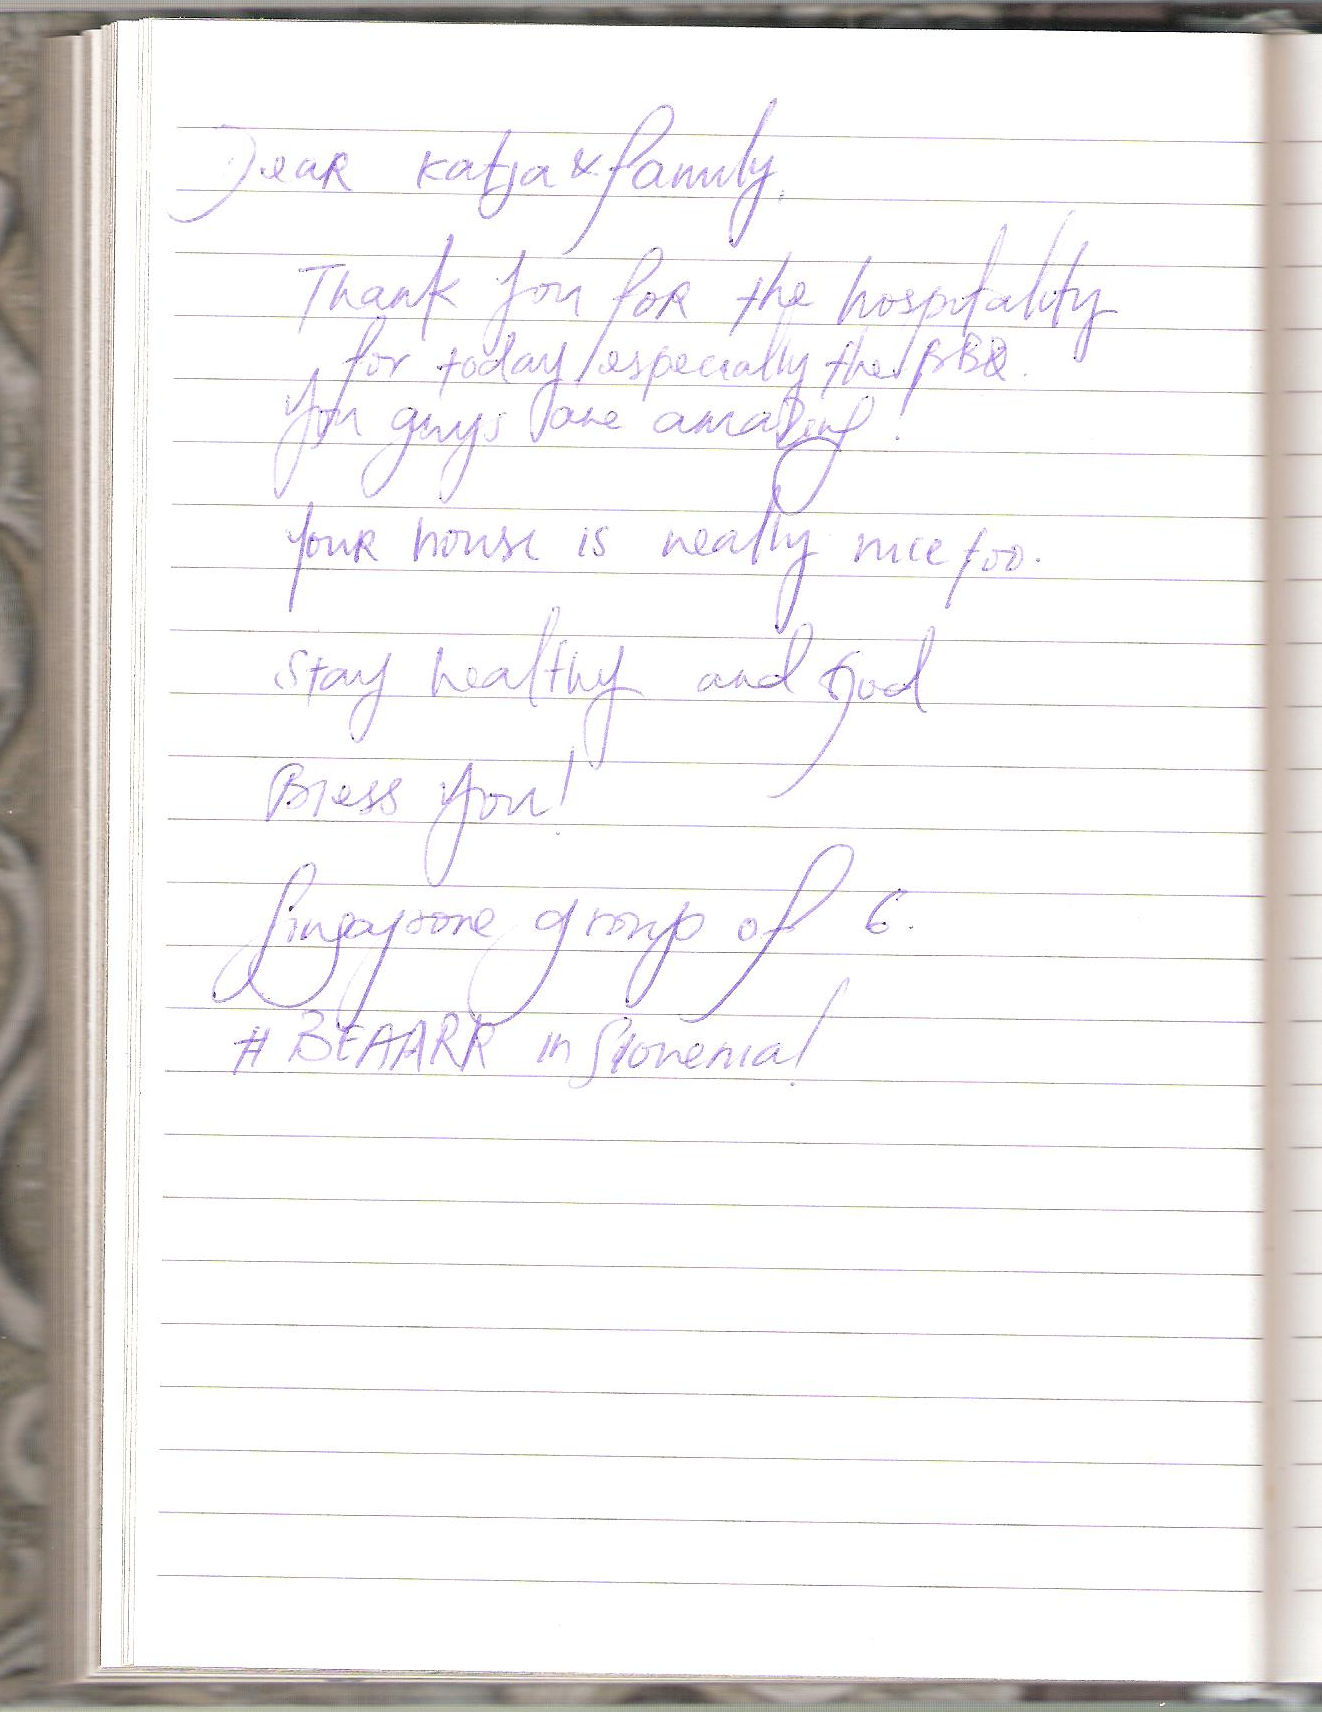 Handwritten Comments In The Guest Book, page 82